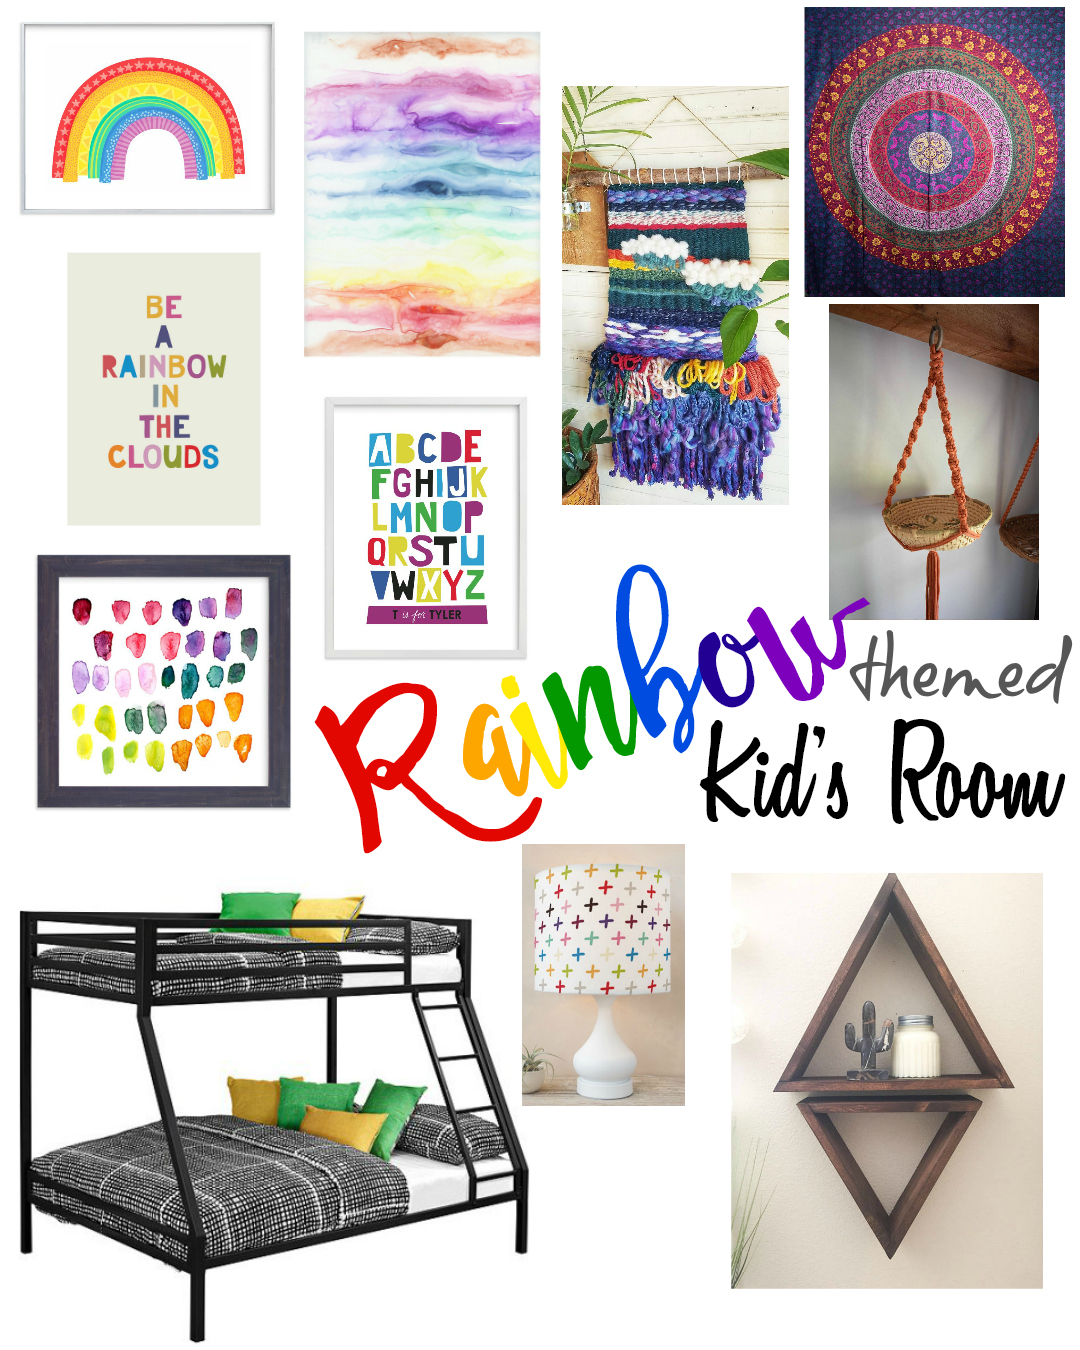 Rainbow Kids Rooms A Designer At Home A Designer 39s Passion For Creating